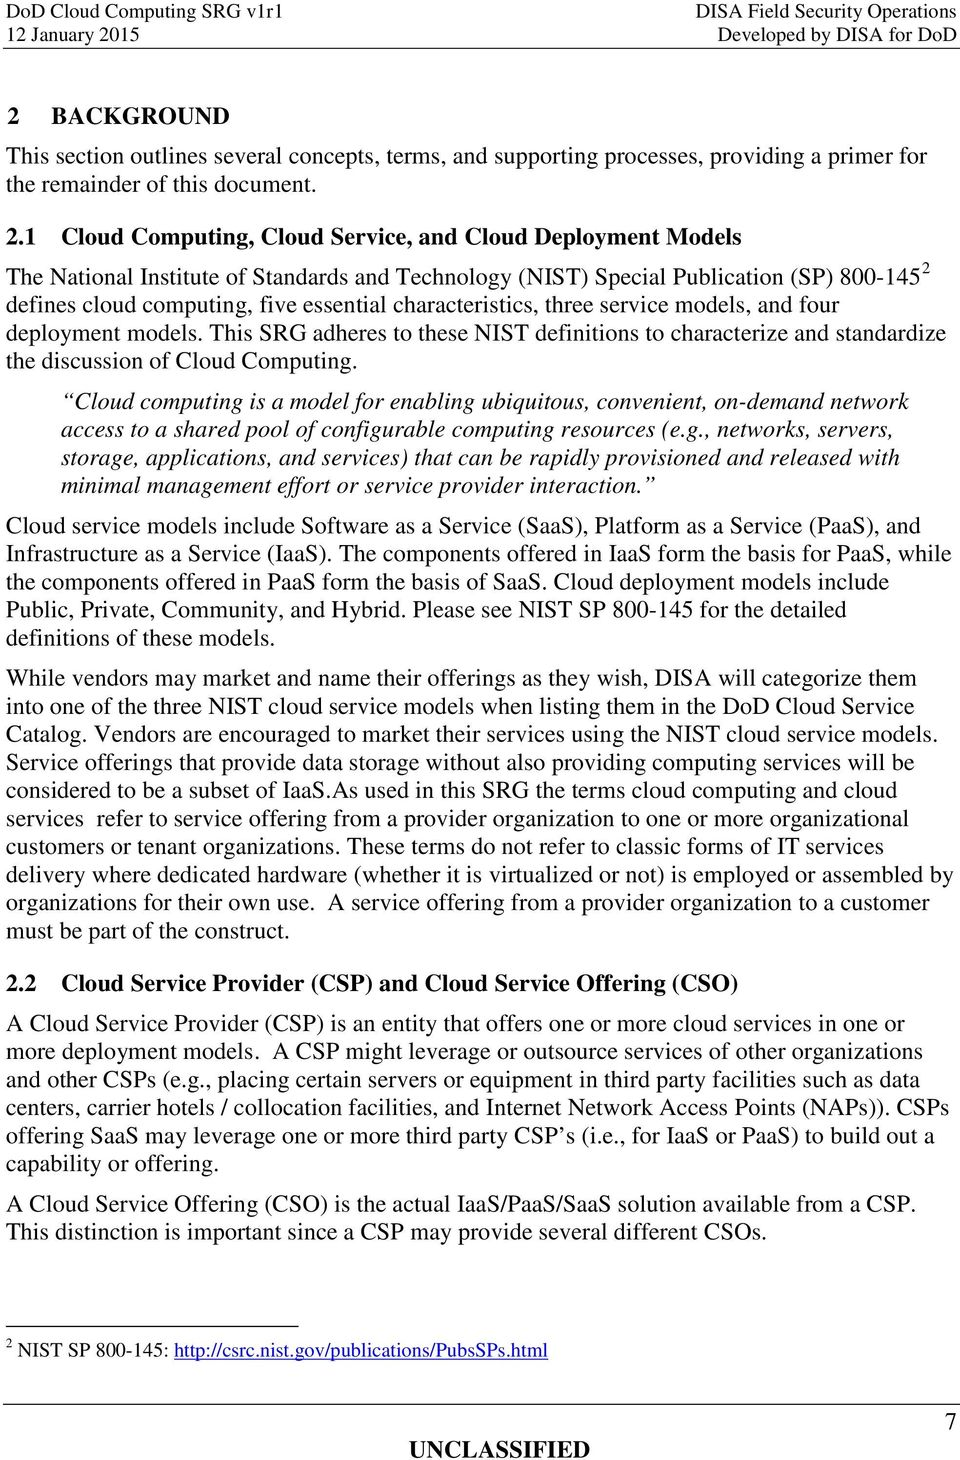 characteristics, three service models, and four deployment models. This SRG adheres to these NIST definitions to characterize and standardize the discussion of Cloud Computing.